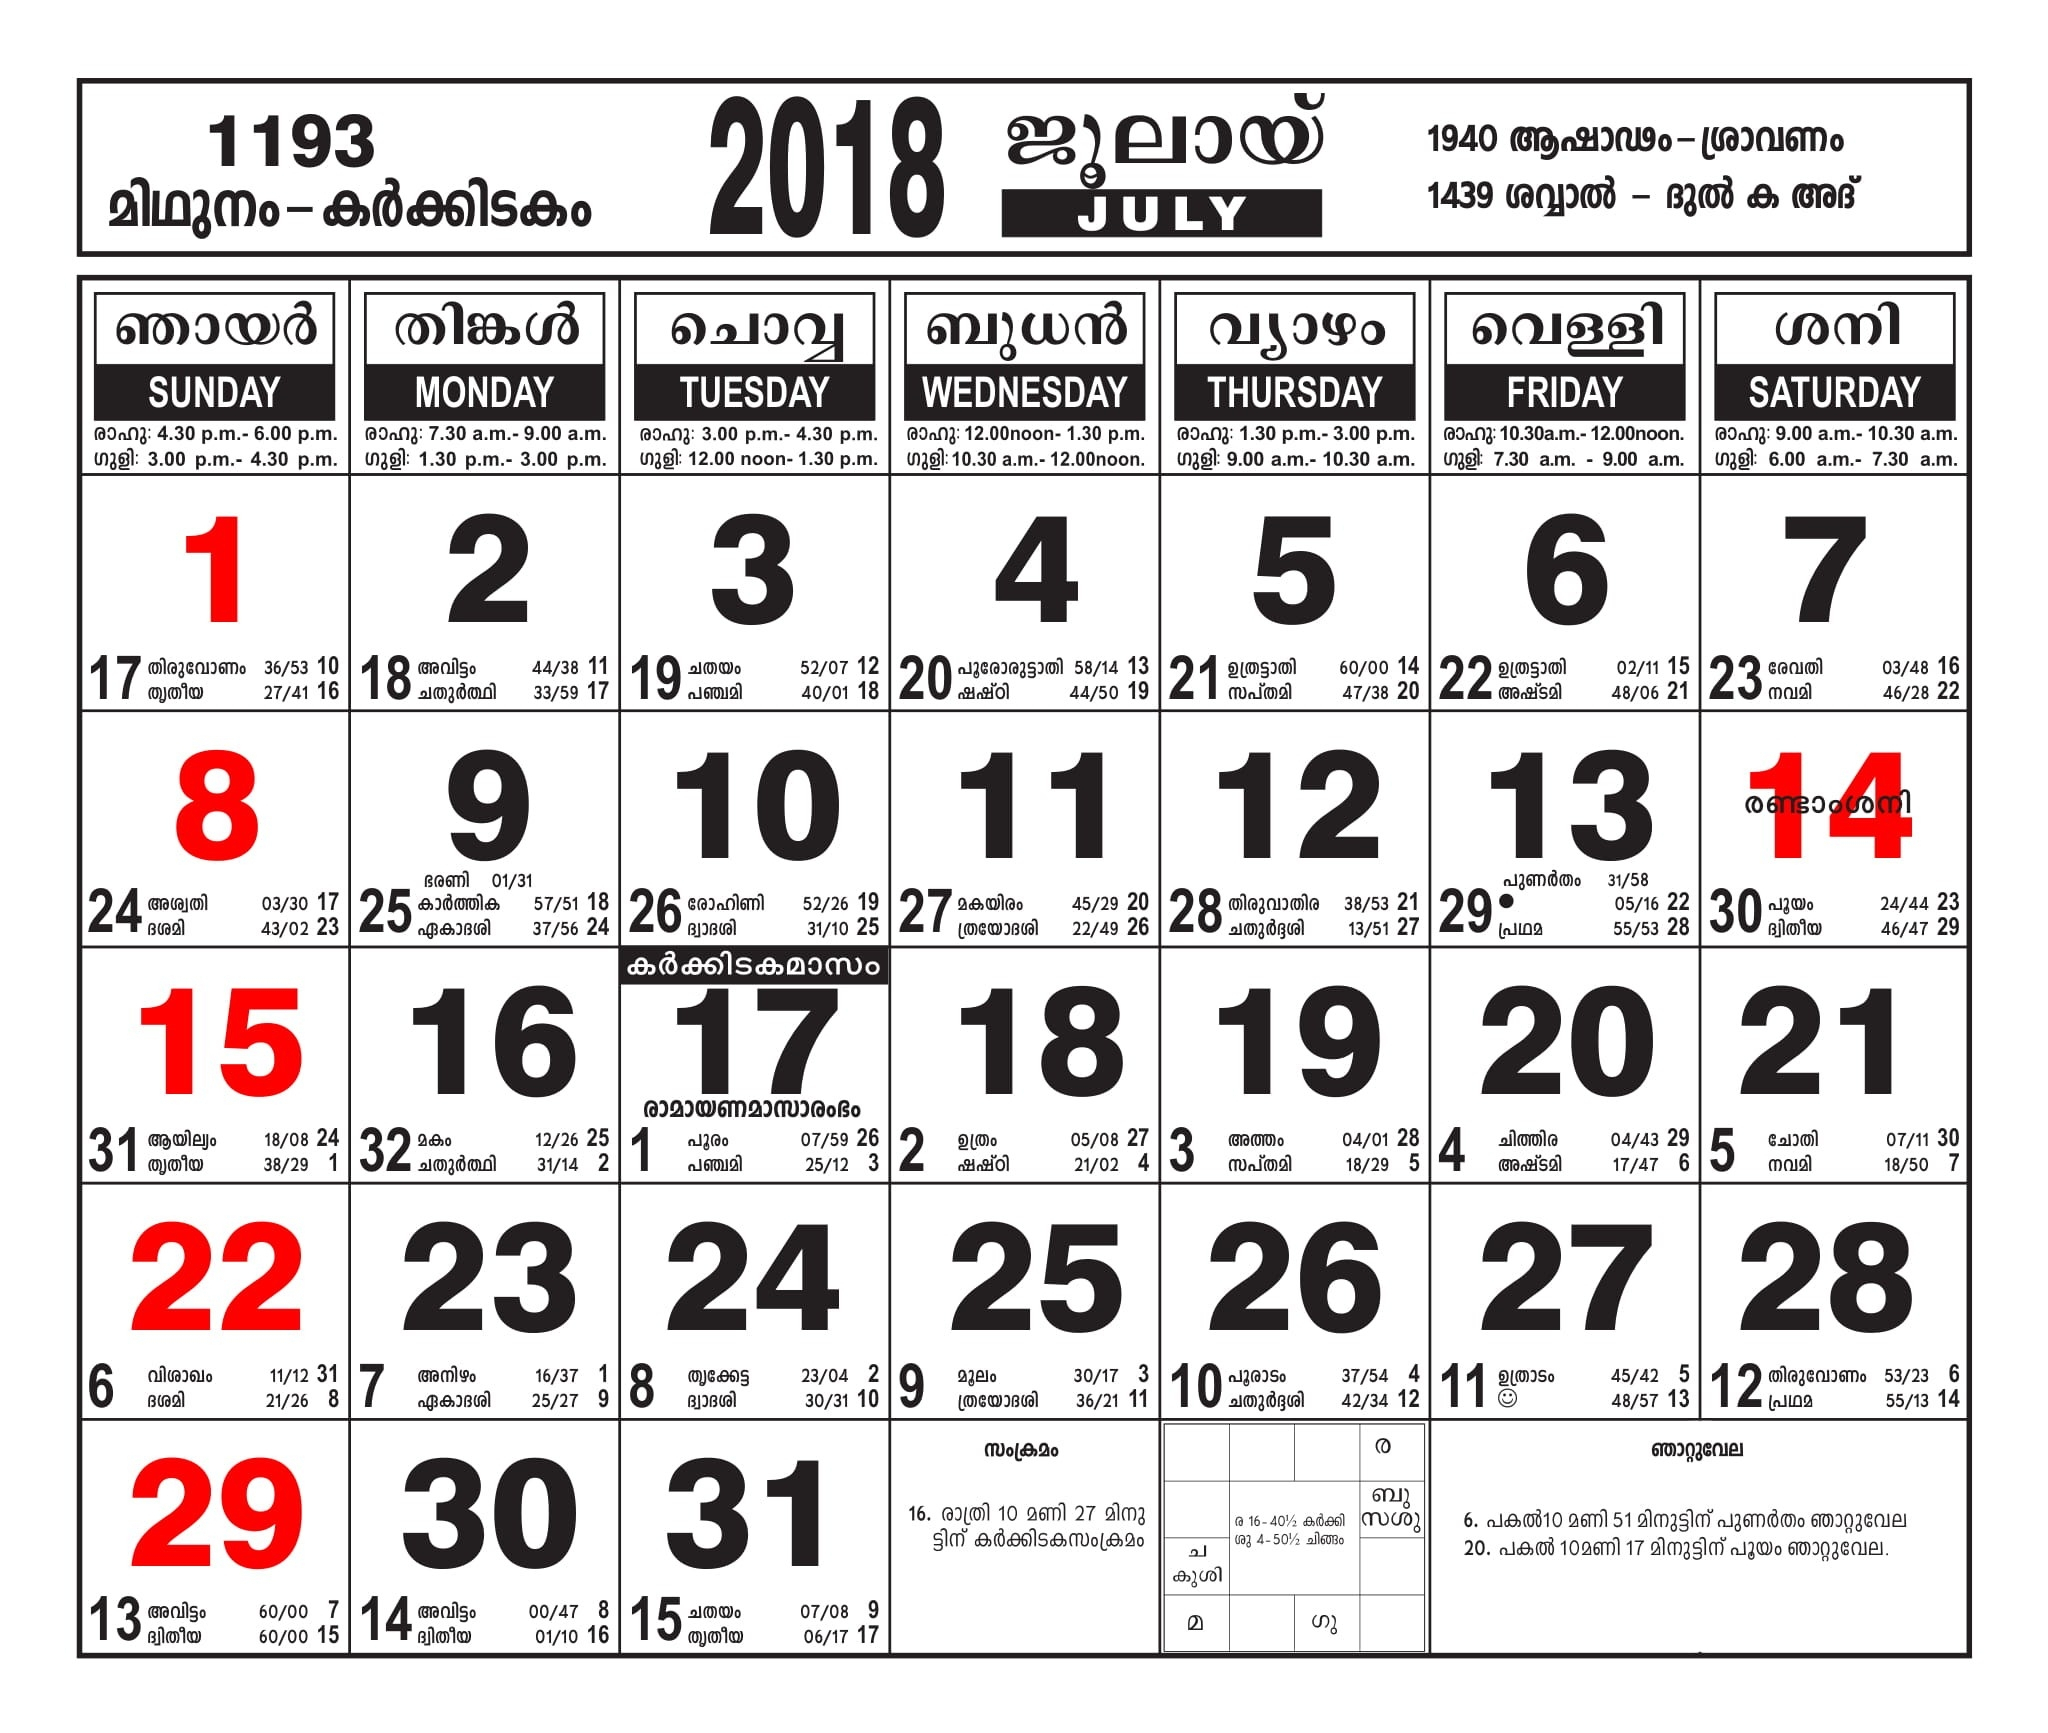 Kerala Govt Calendar August 2020 | Example Calendar Printable for Kerala Govt Calendar September 2020